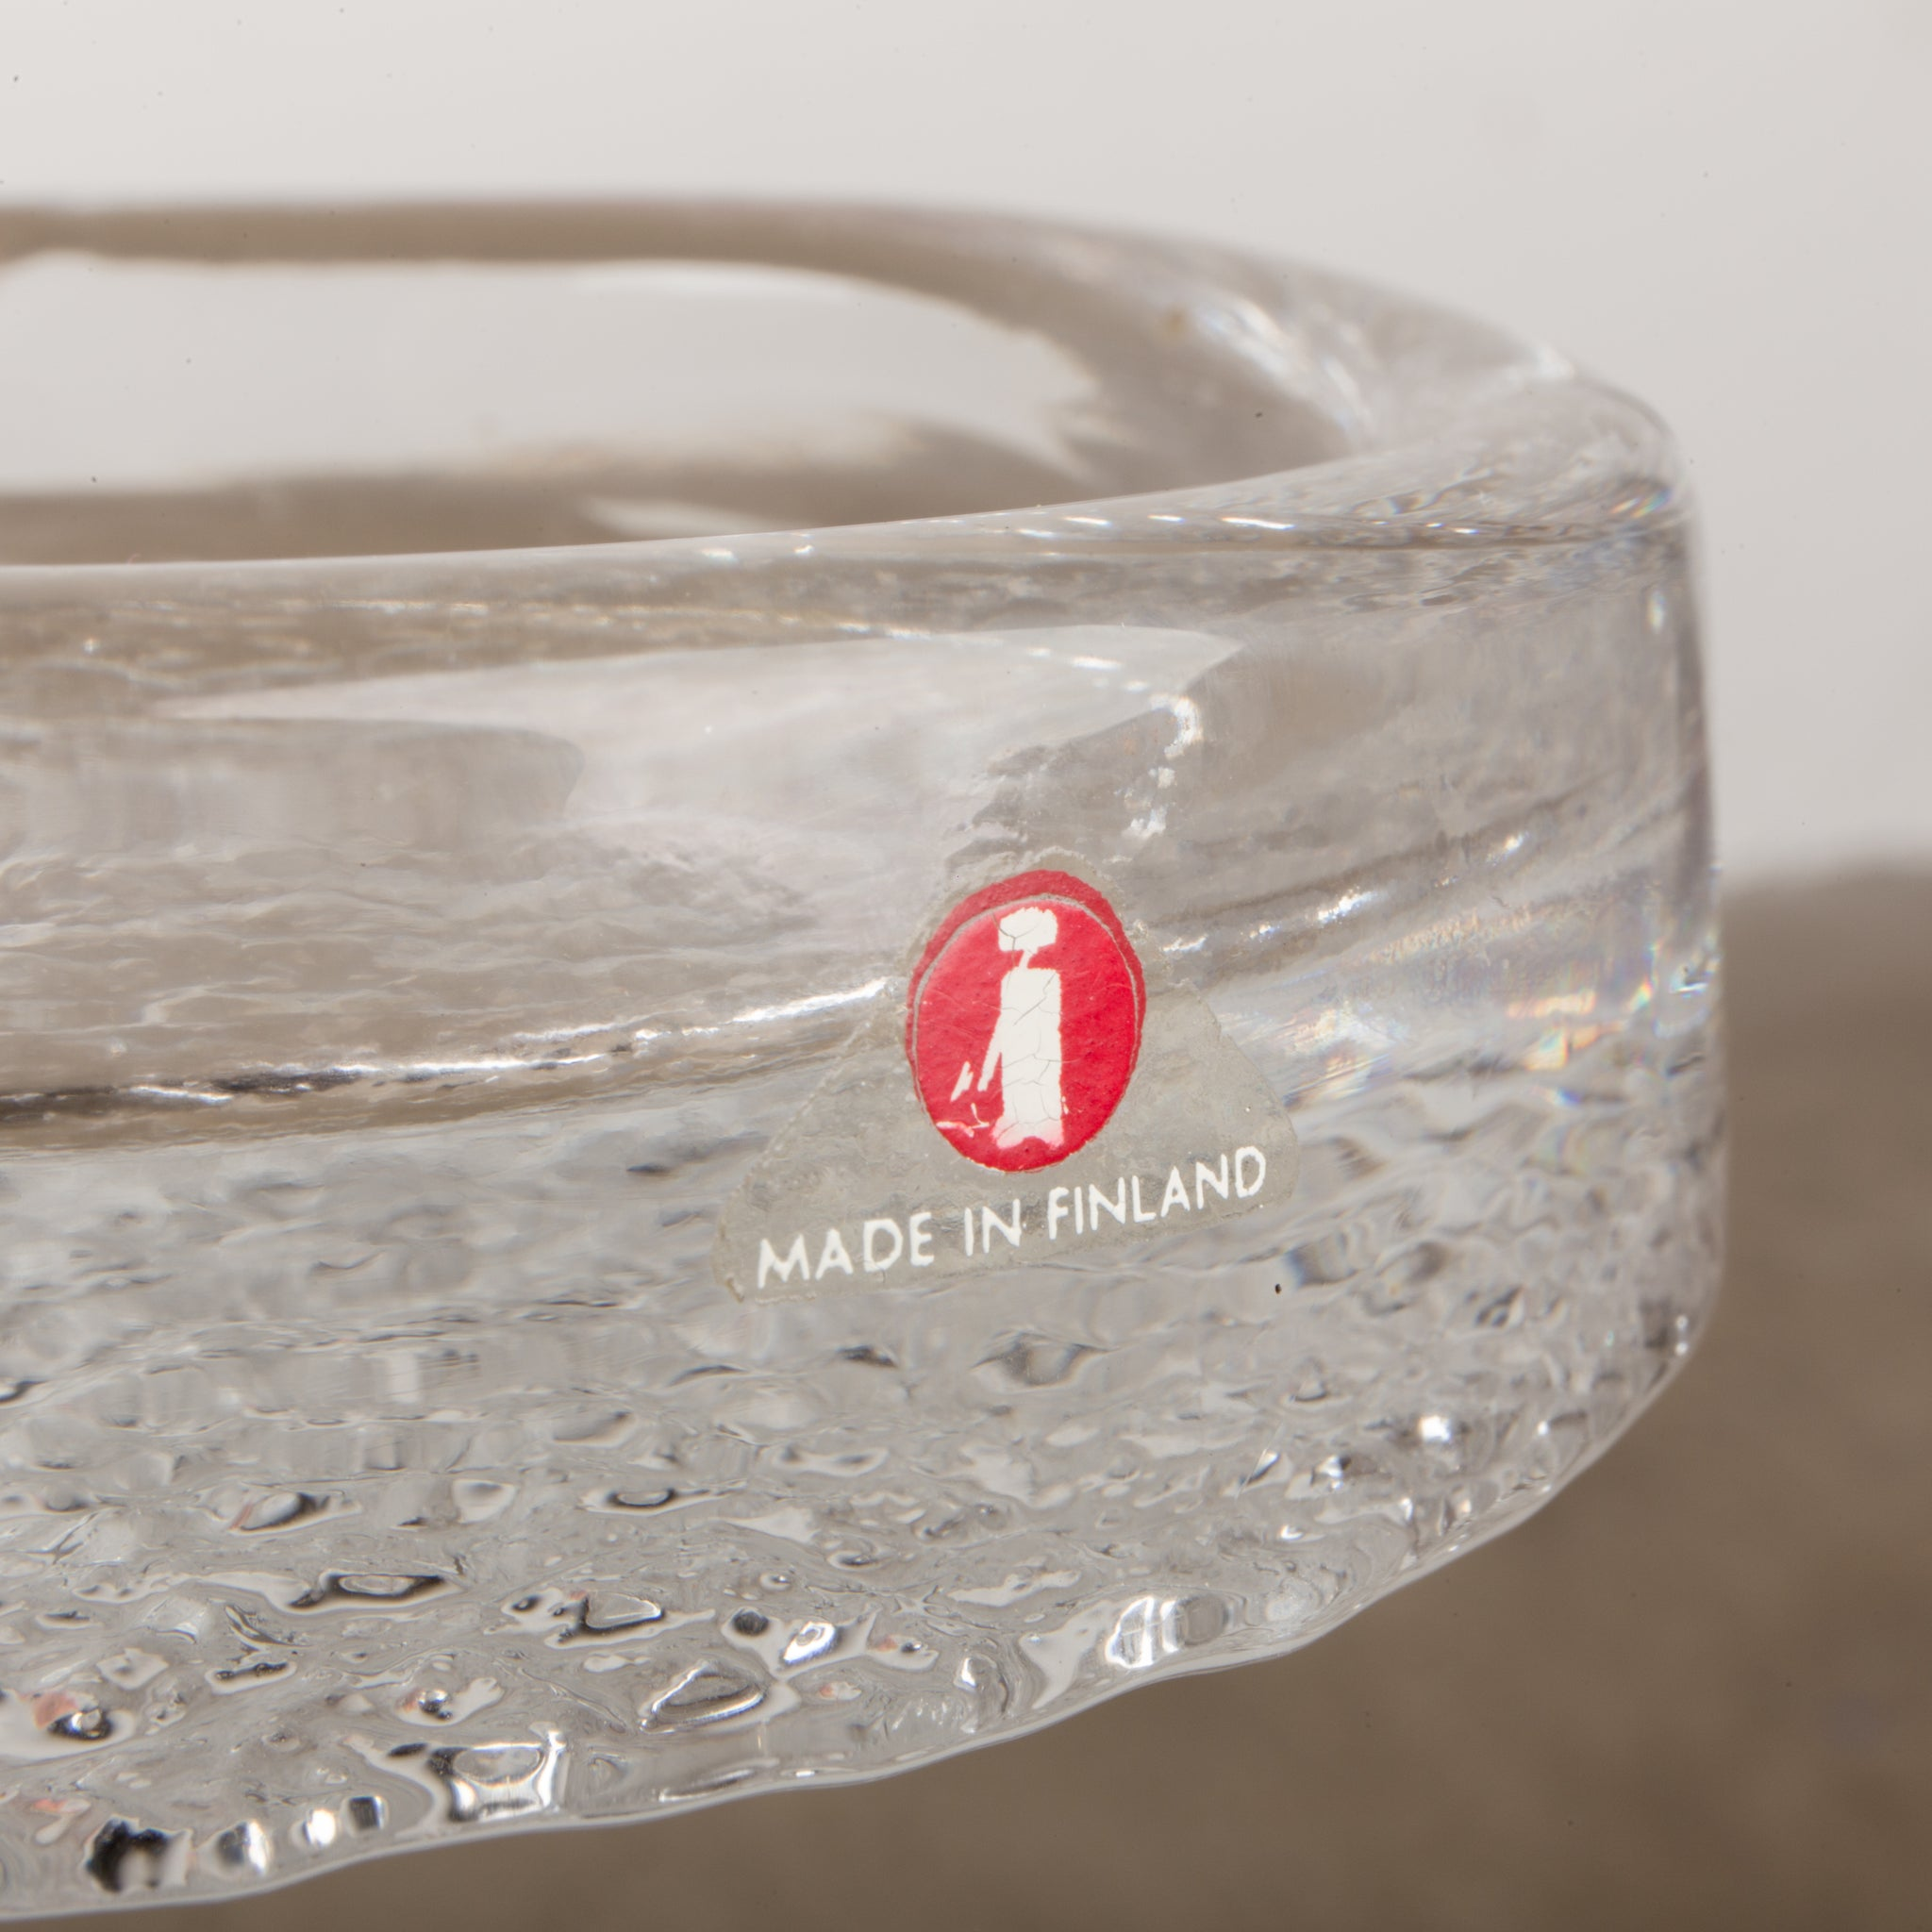 Crystal ashtray made in Finland